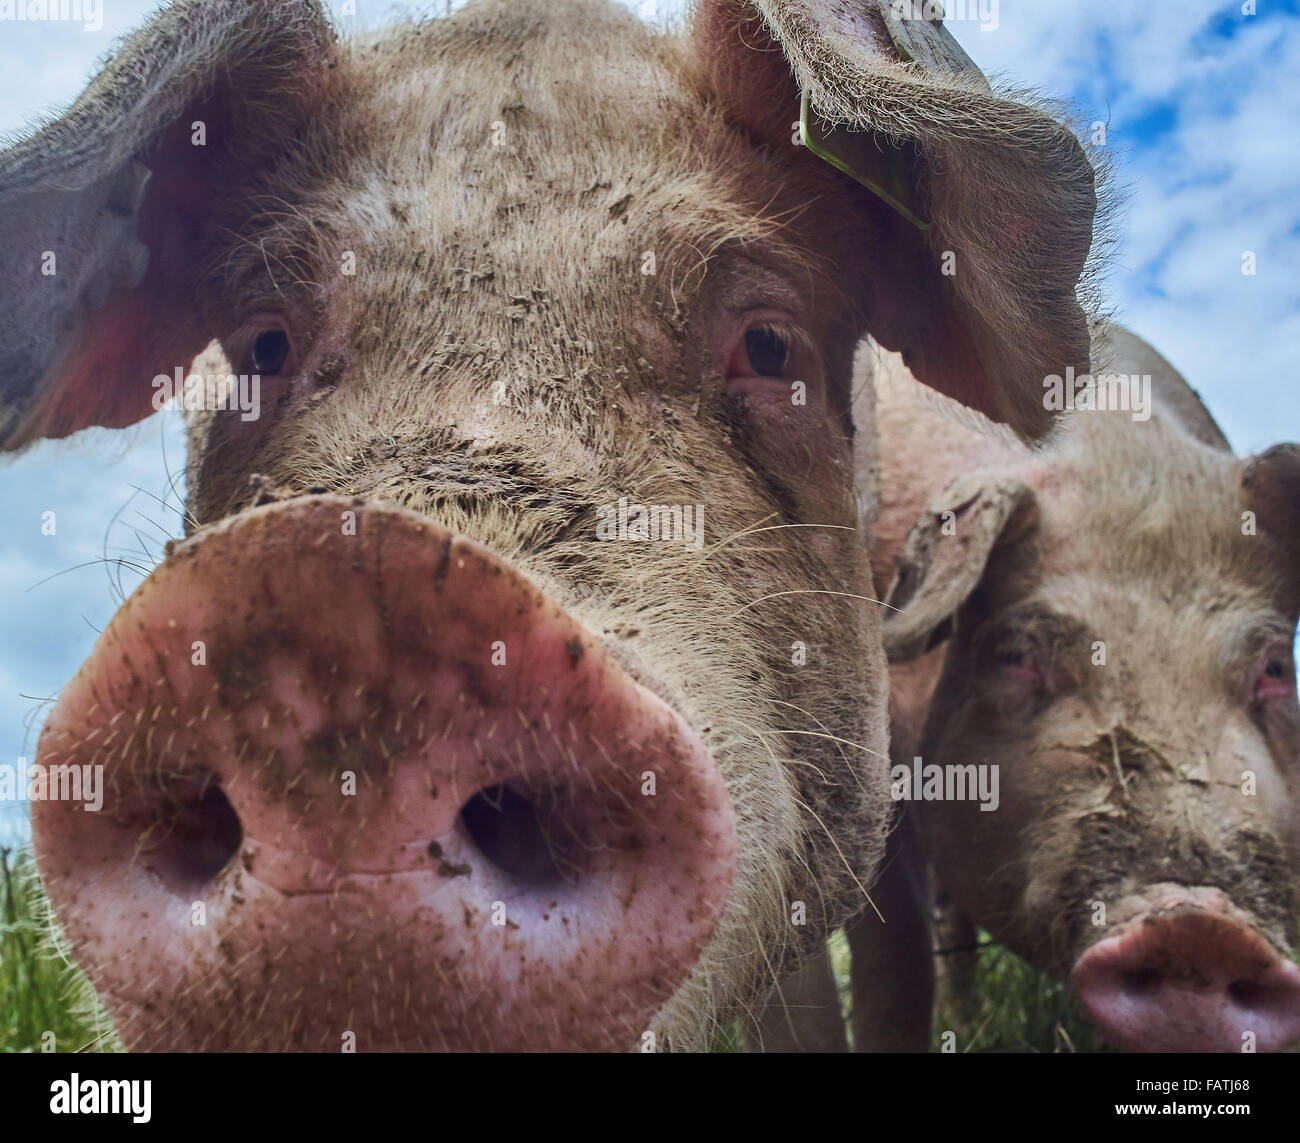 Close up Head shot of free range pigs in a grass field - Stock Image